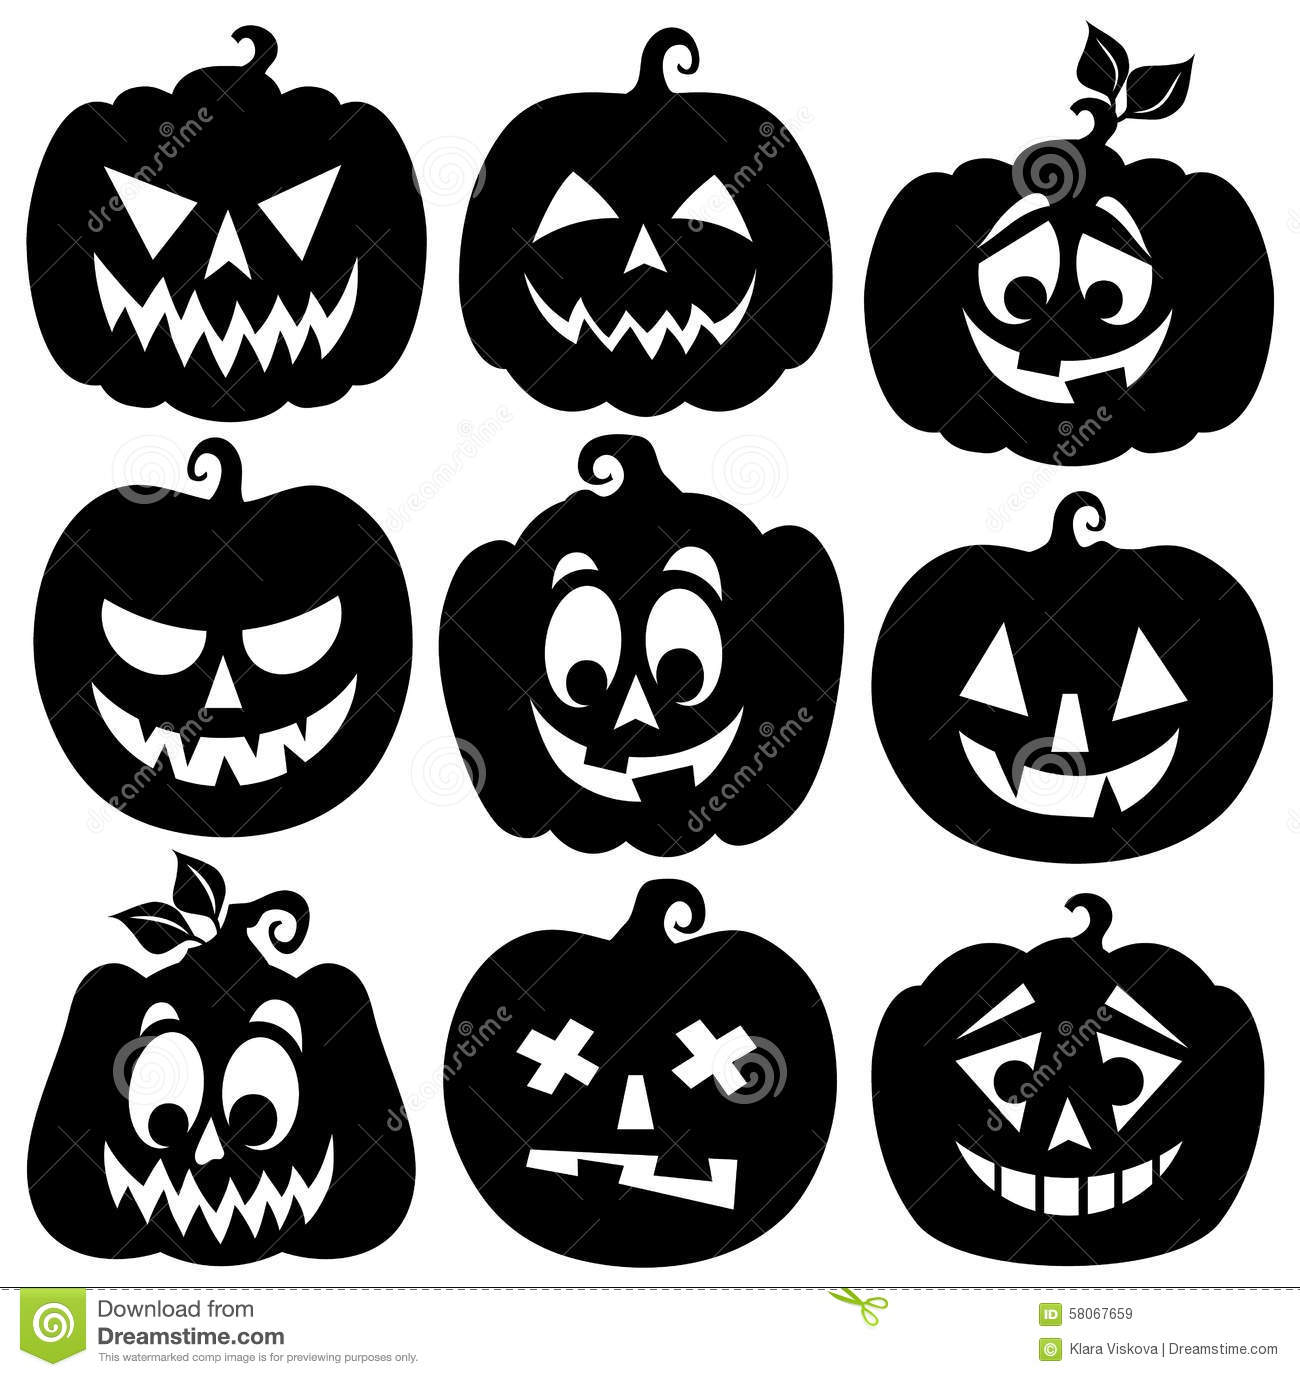 pumpkin silhouettes theme set 1 stock vector image 58067659